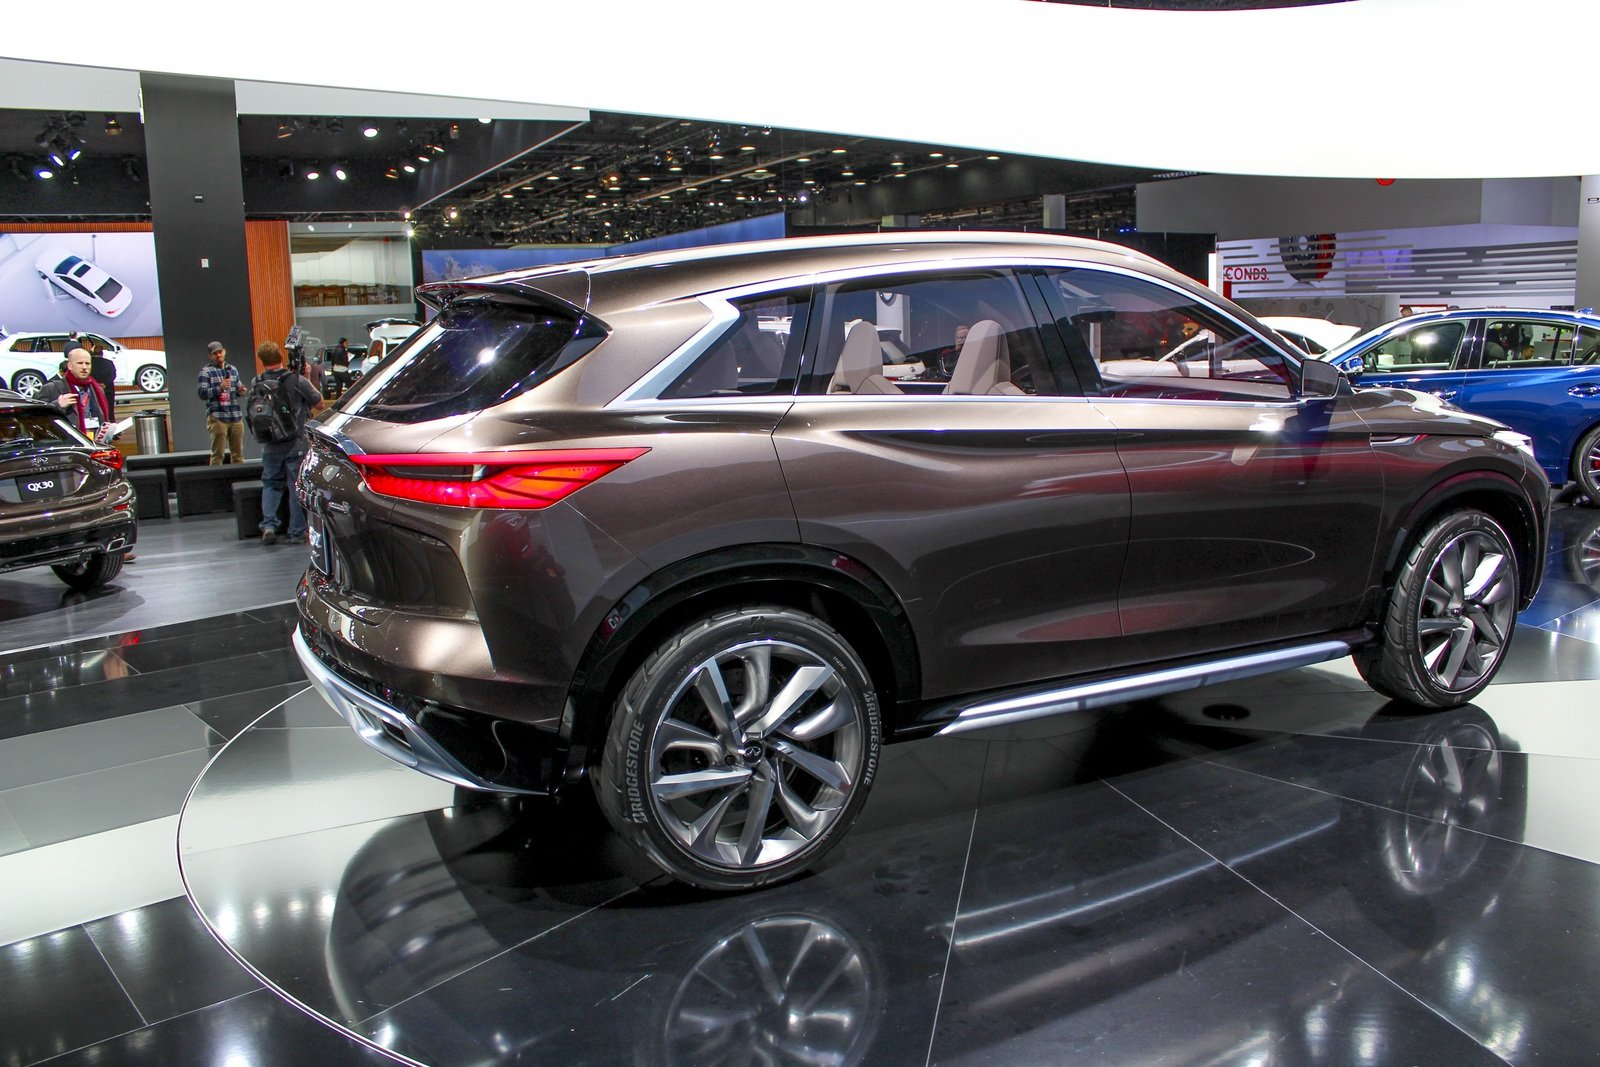 2017 infiniti qx50 concept picture 702020 car review top speed. Black Bedroom Furniture Sets. Home Design Ideas